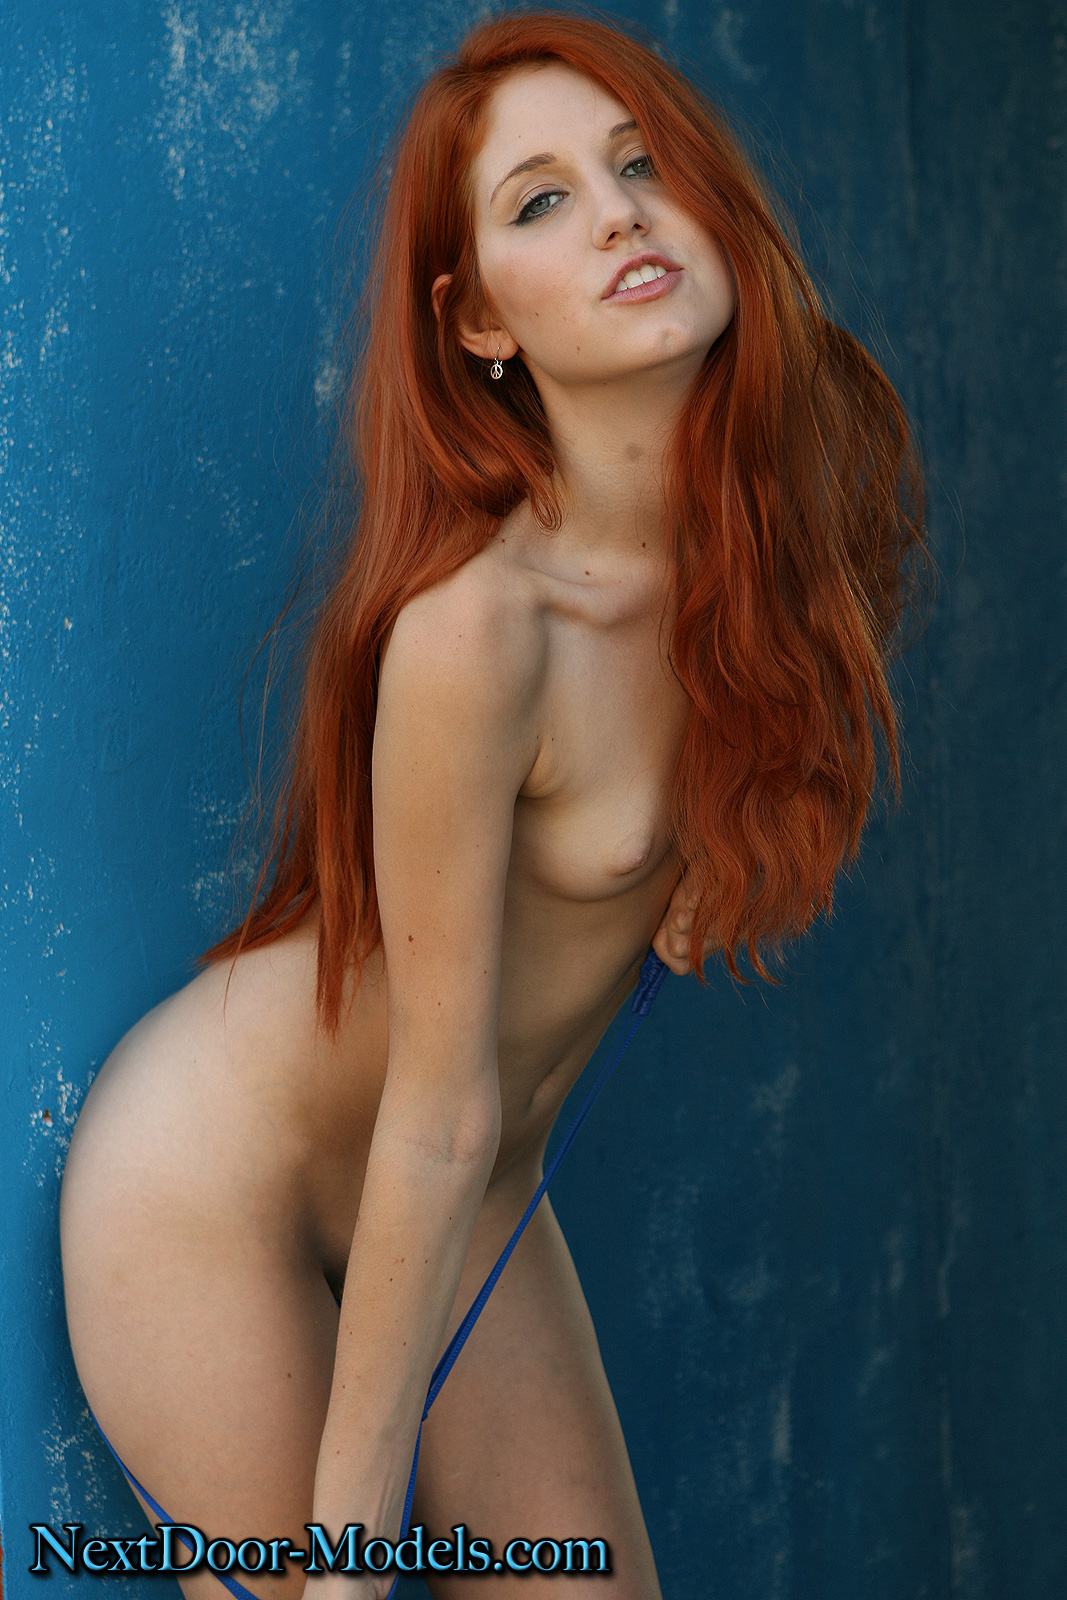 See everytime sexy nude redhead males visited